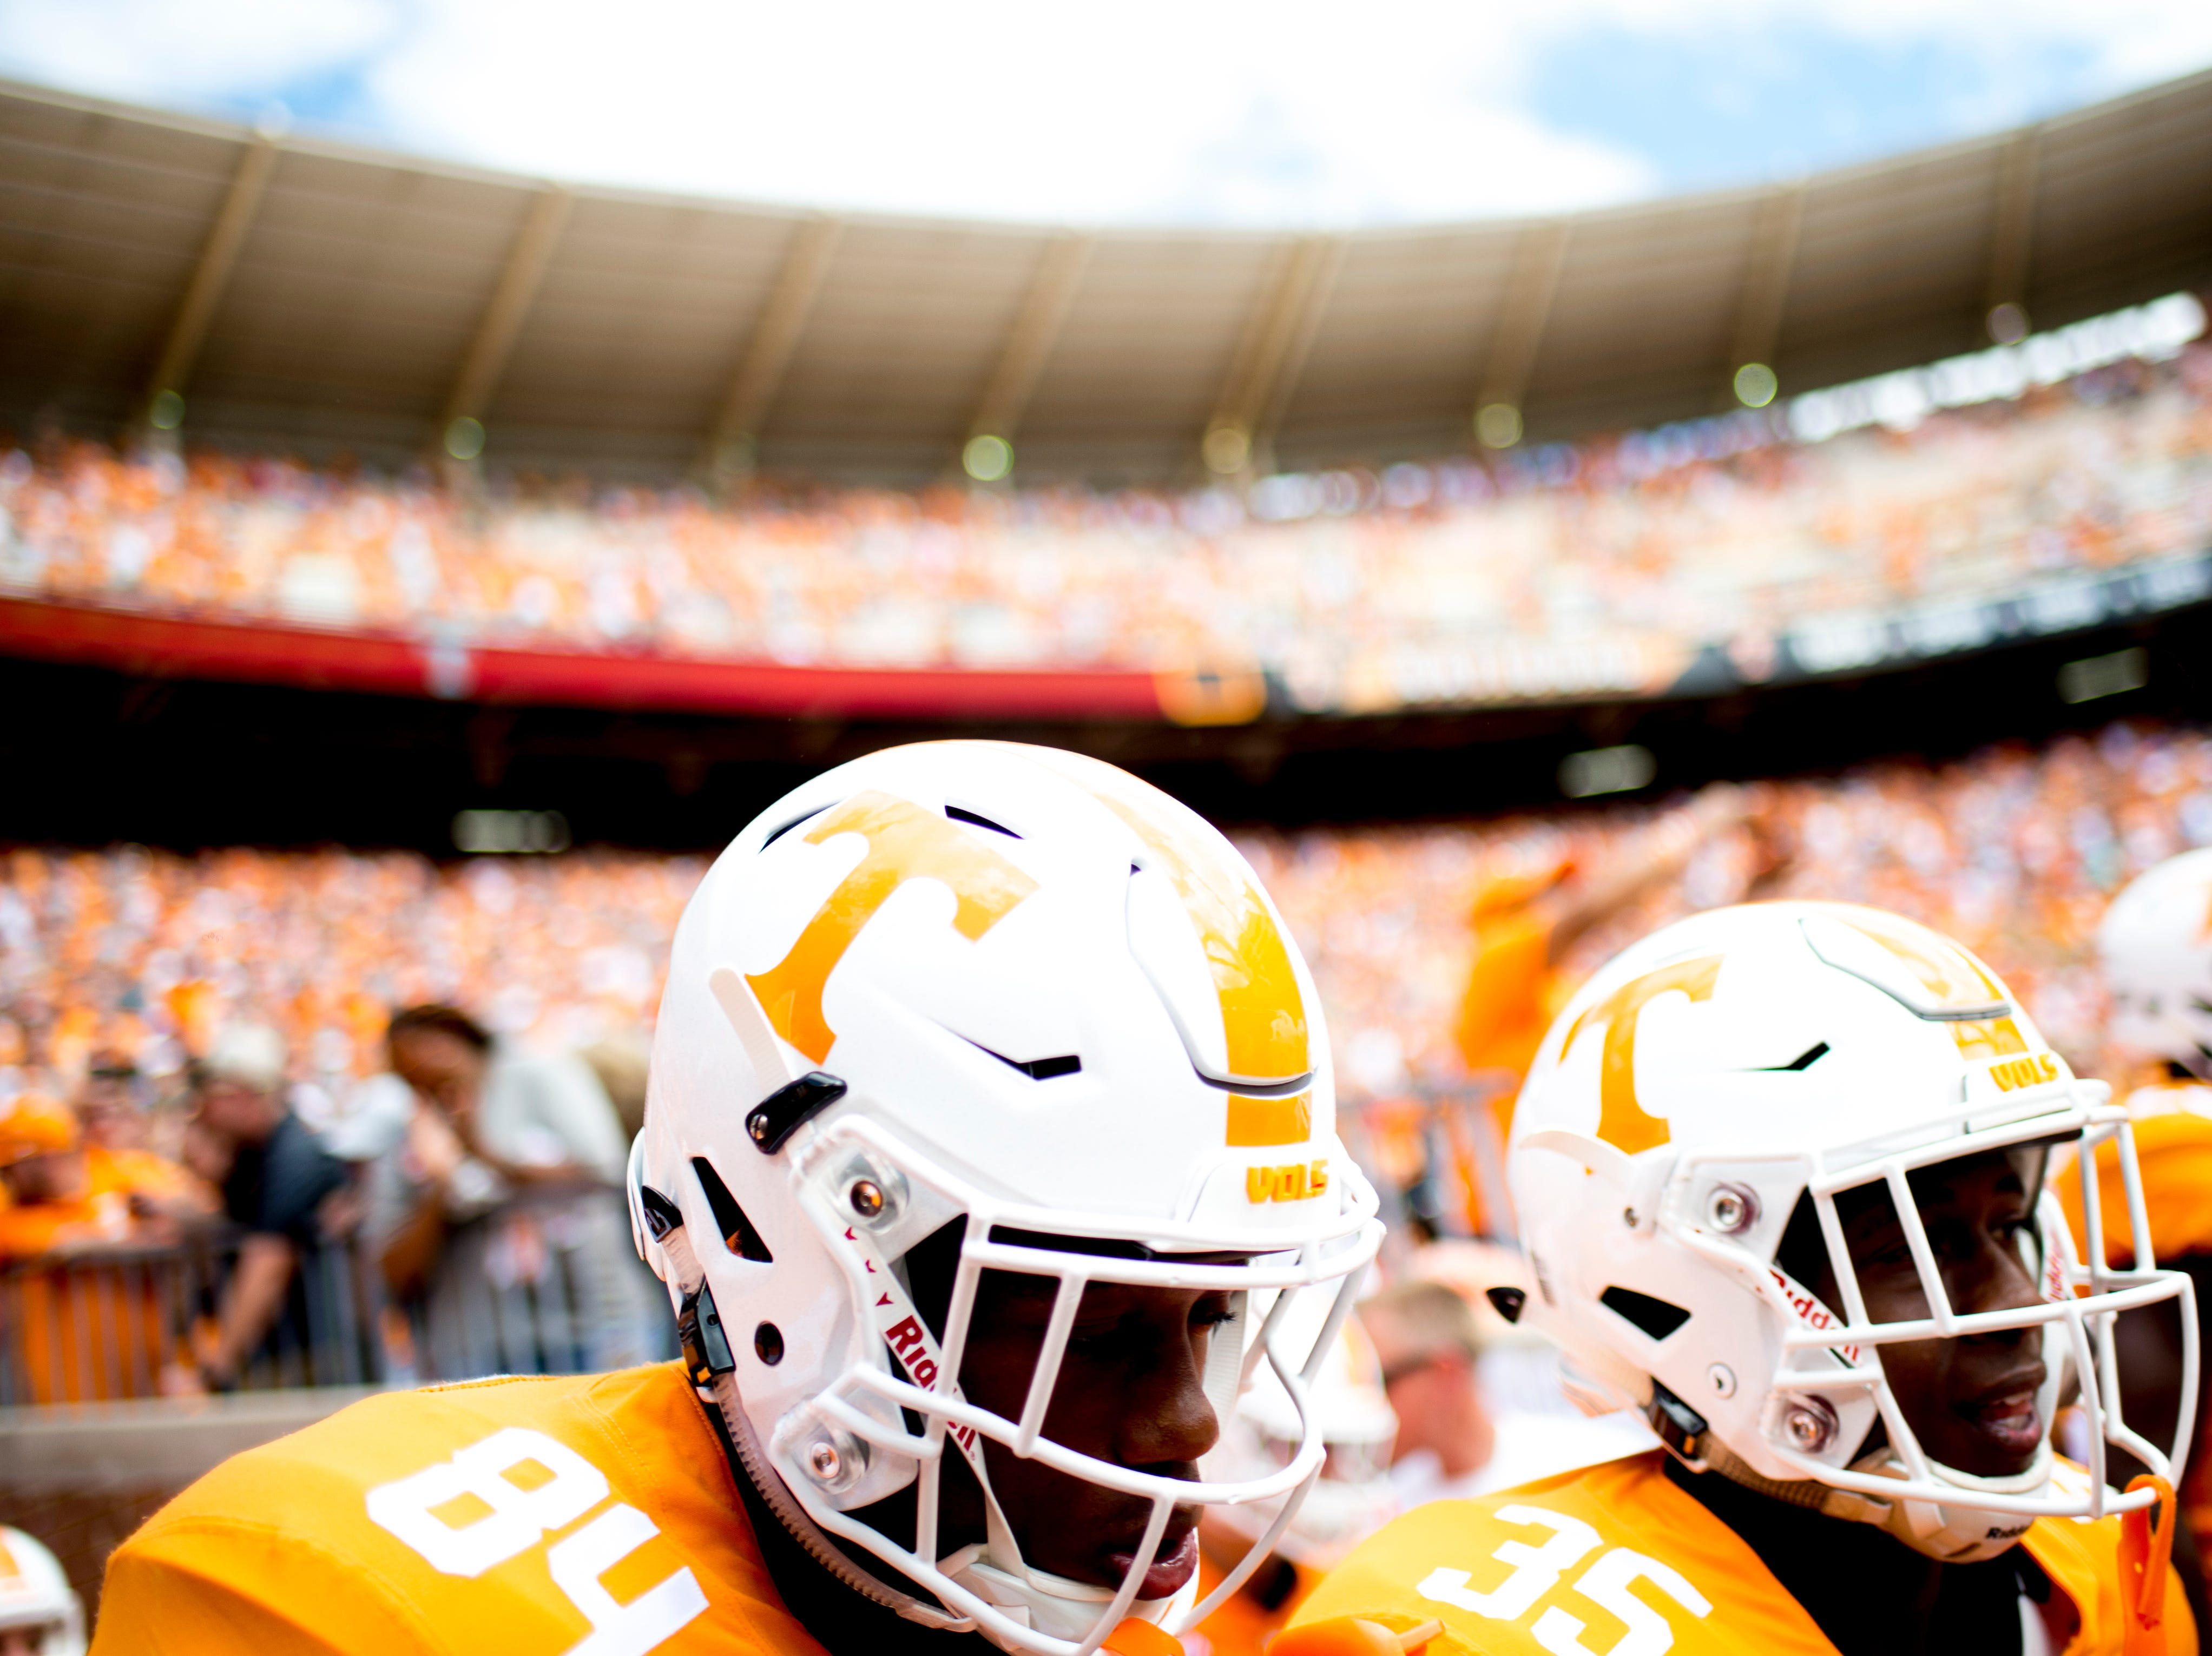 Tennessee wide receiver Josh Palmer (84) runs on the field during a game between Tennessee and UTEP at Neyland Stadium in Knoxville, Tennessee on Saturday, September 15, 2018.